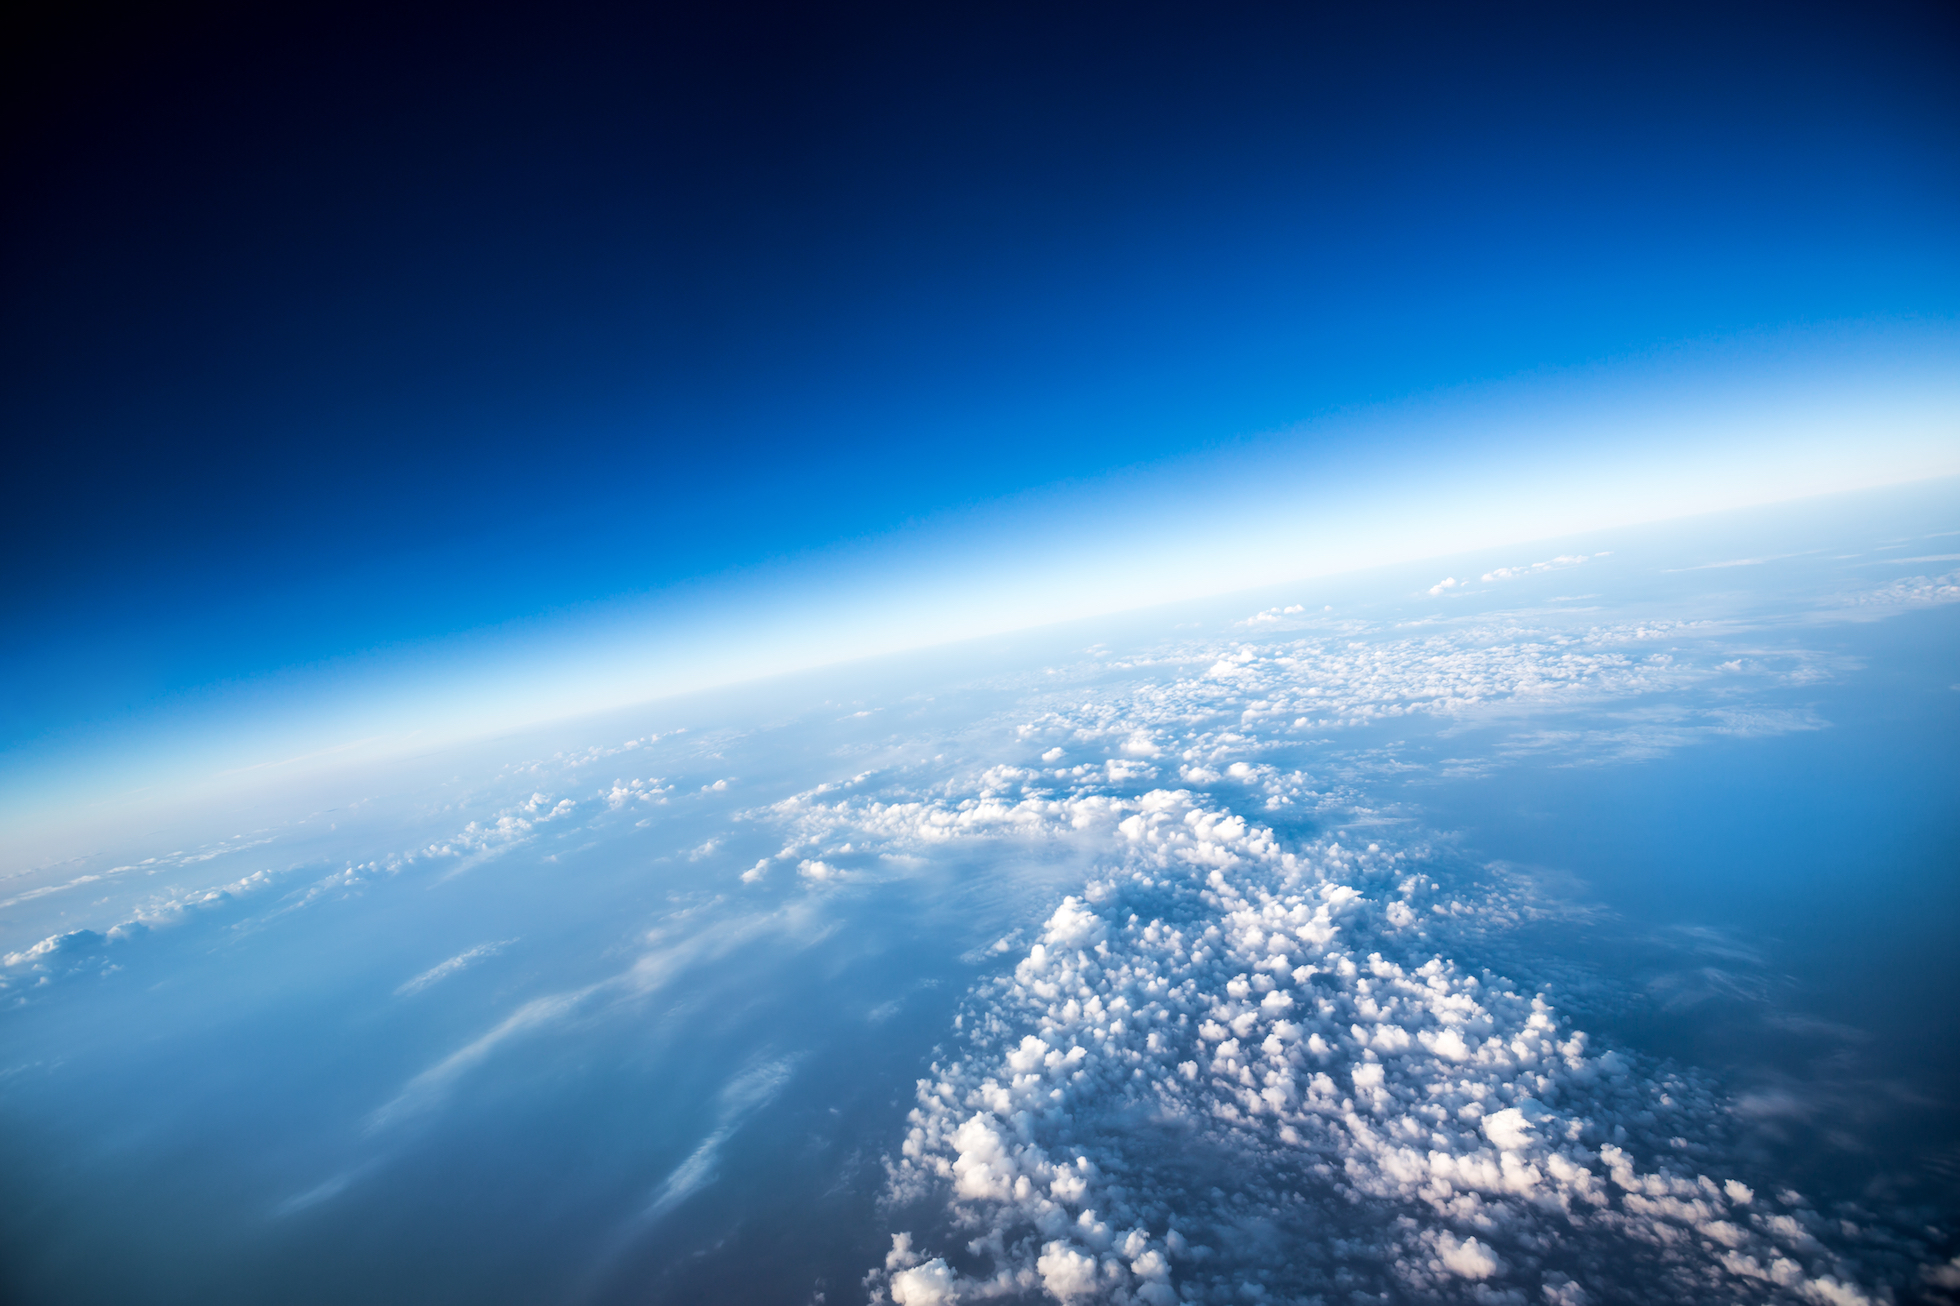 The results of a new study suggest that the recovery of the ozone layer may be limited to the Antarctic region.